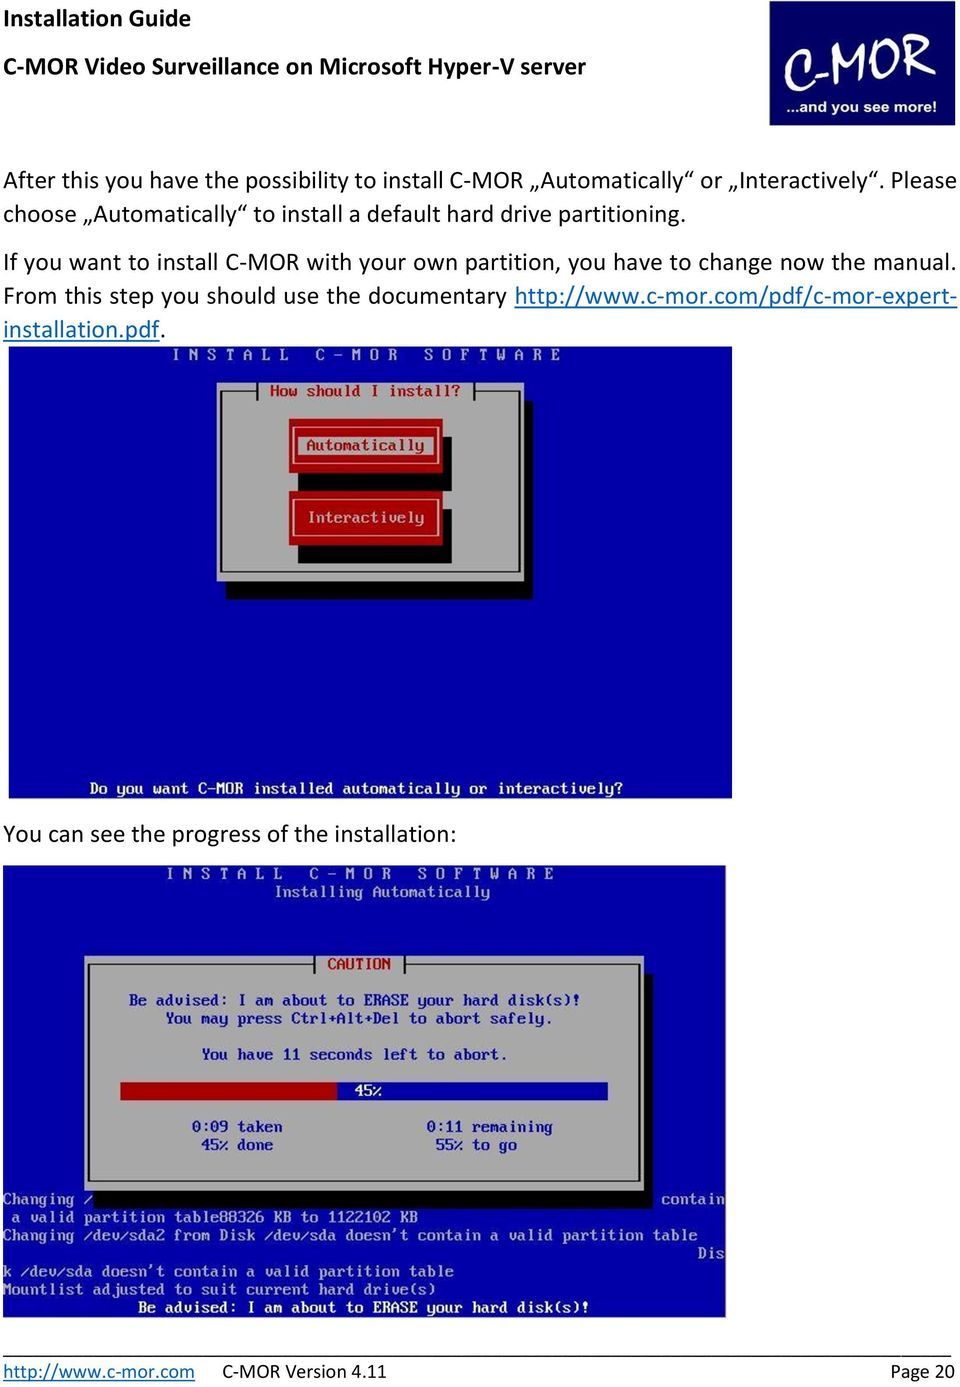 If you want to install C-MOR with your own partition, you have to change now the manual.